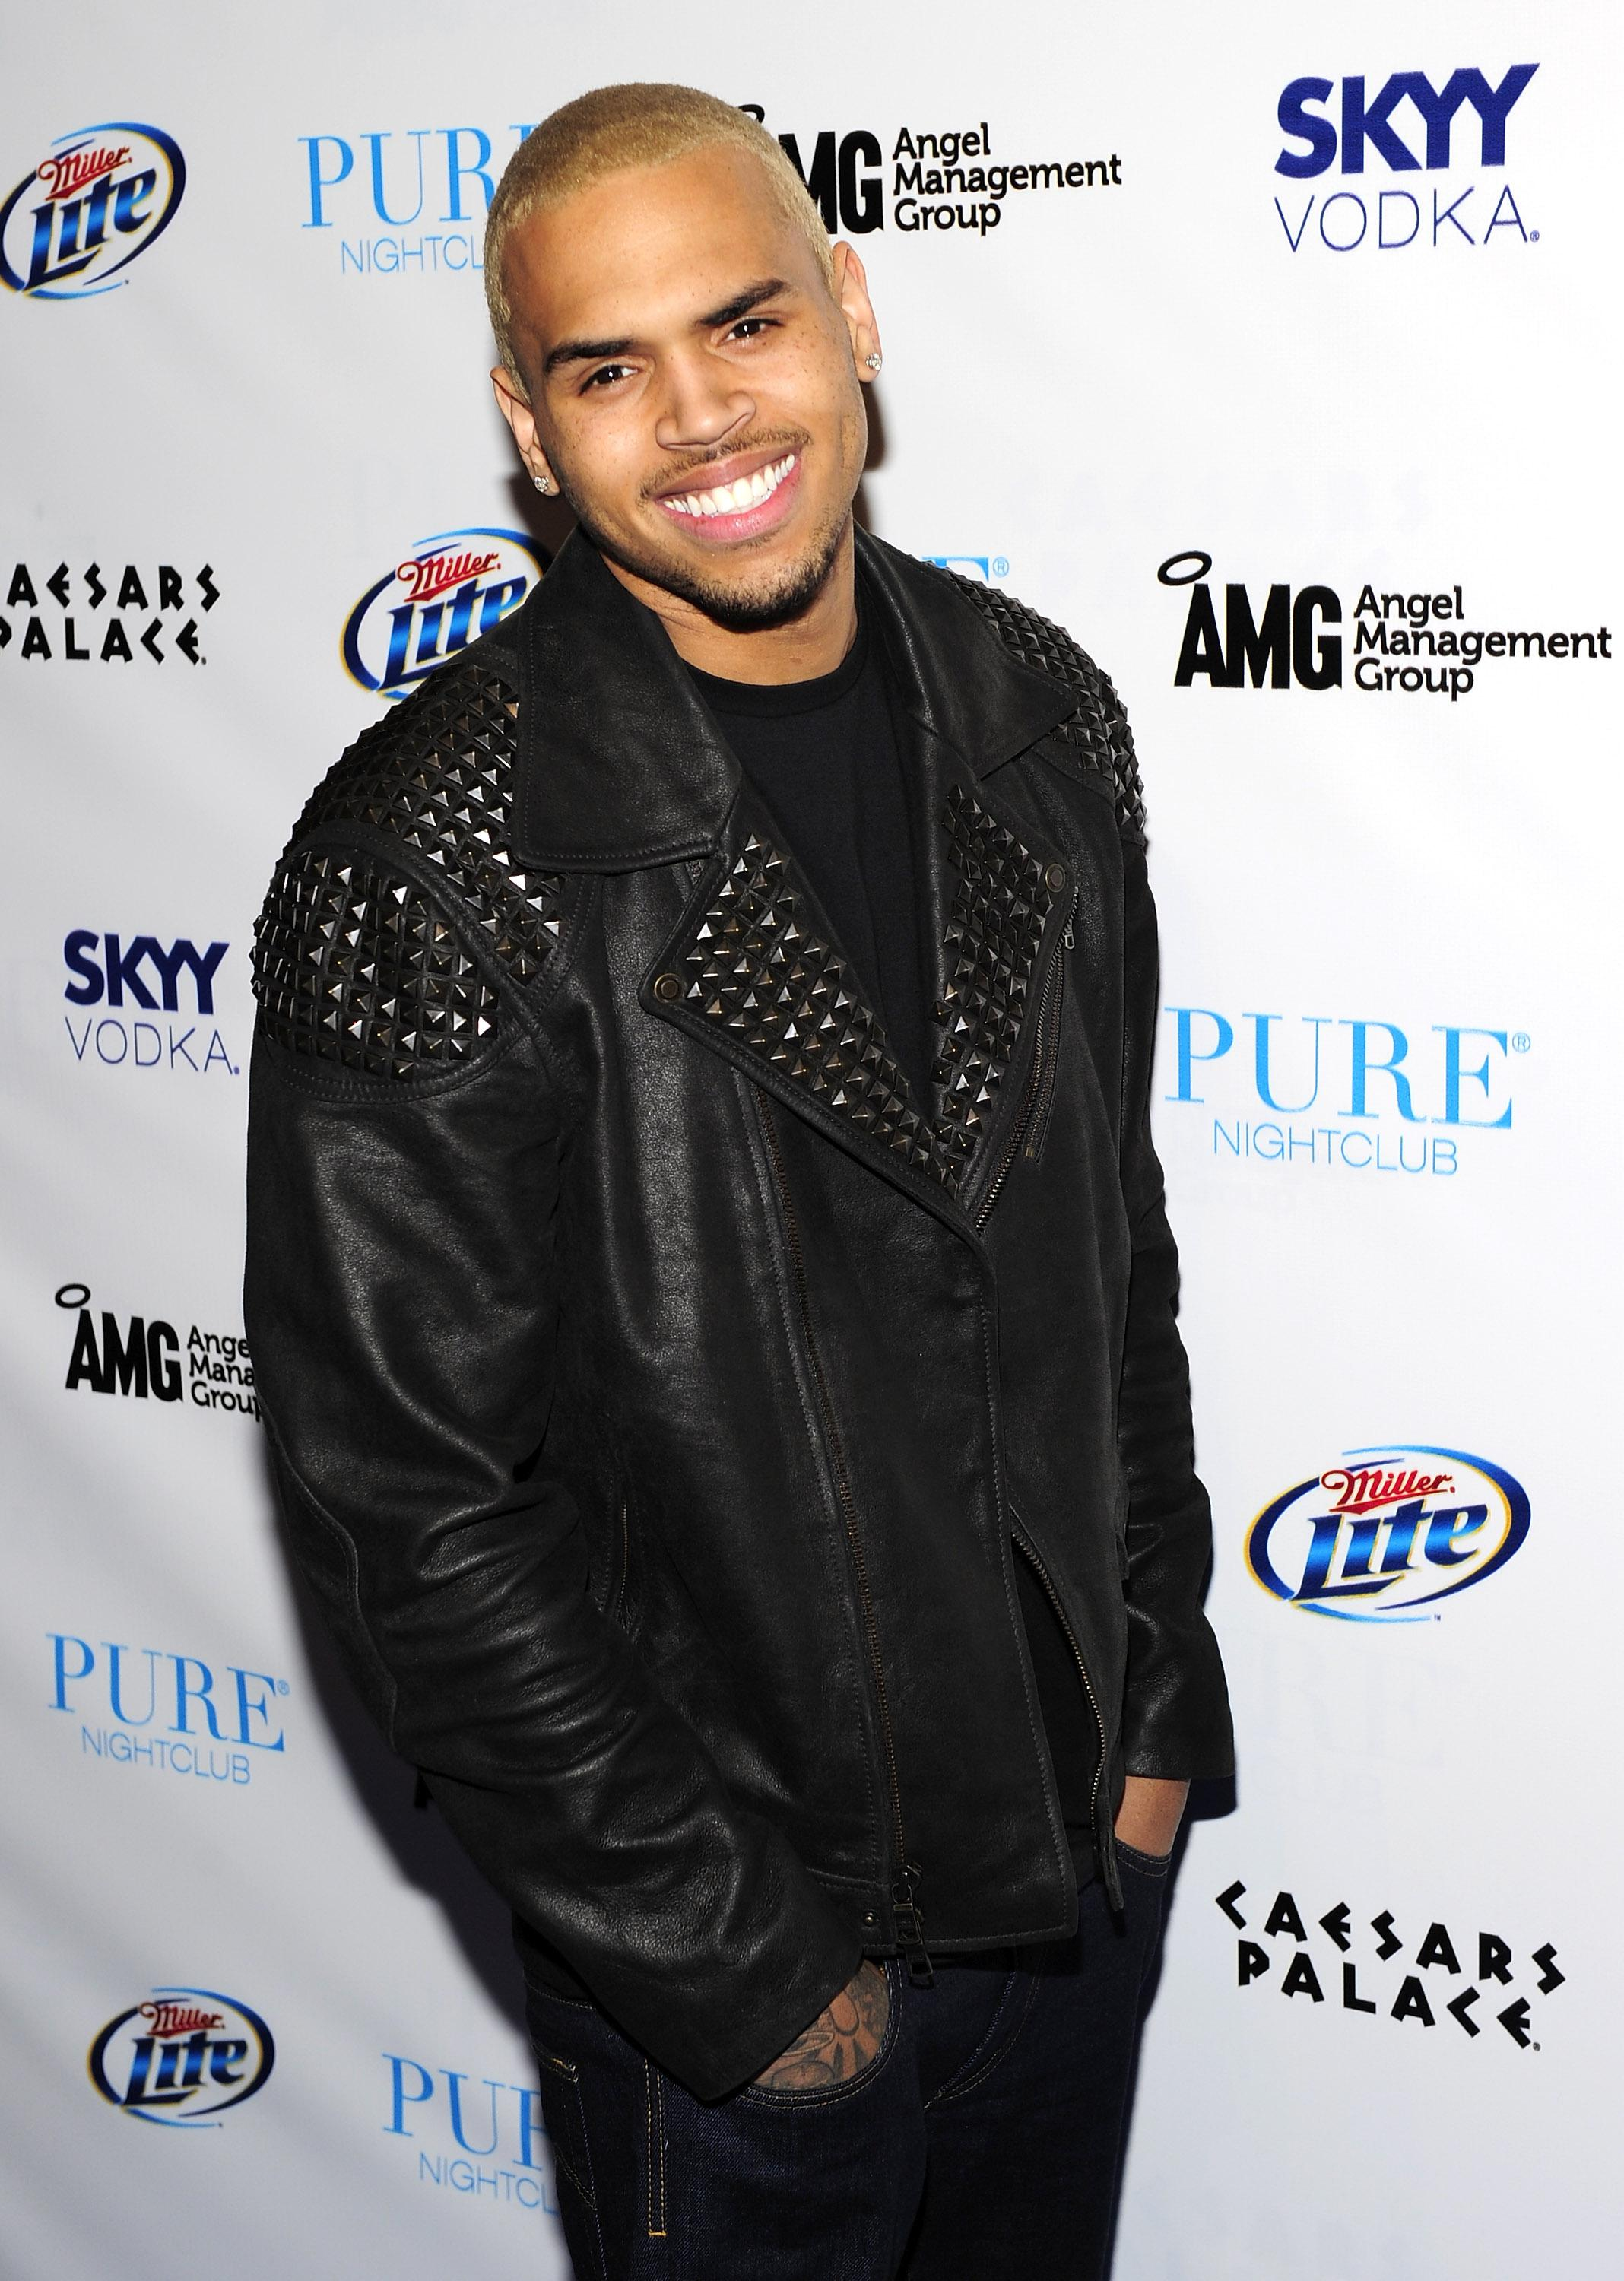 Chris Brown Celebrates His 22nd Birthday At Pure Nightclub